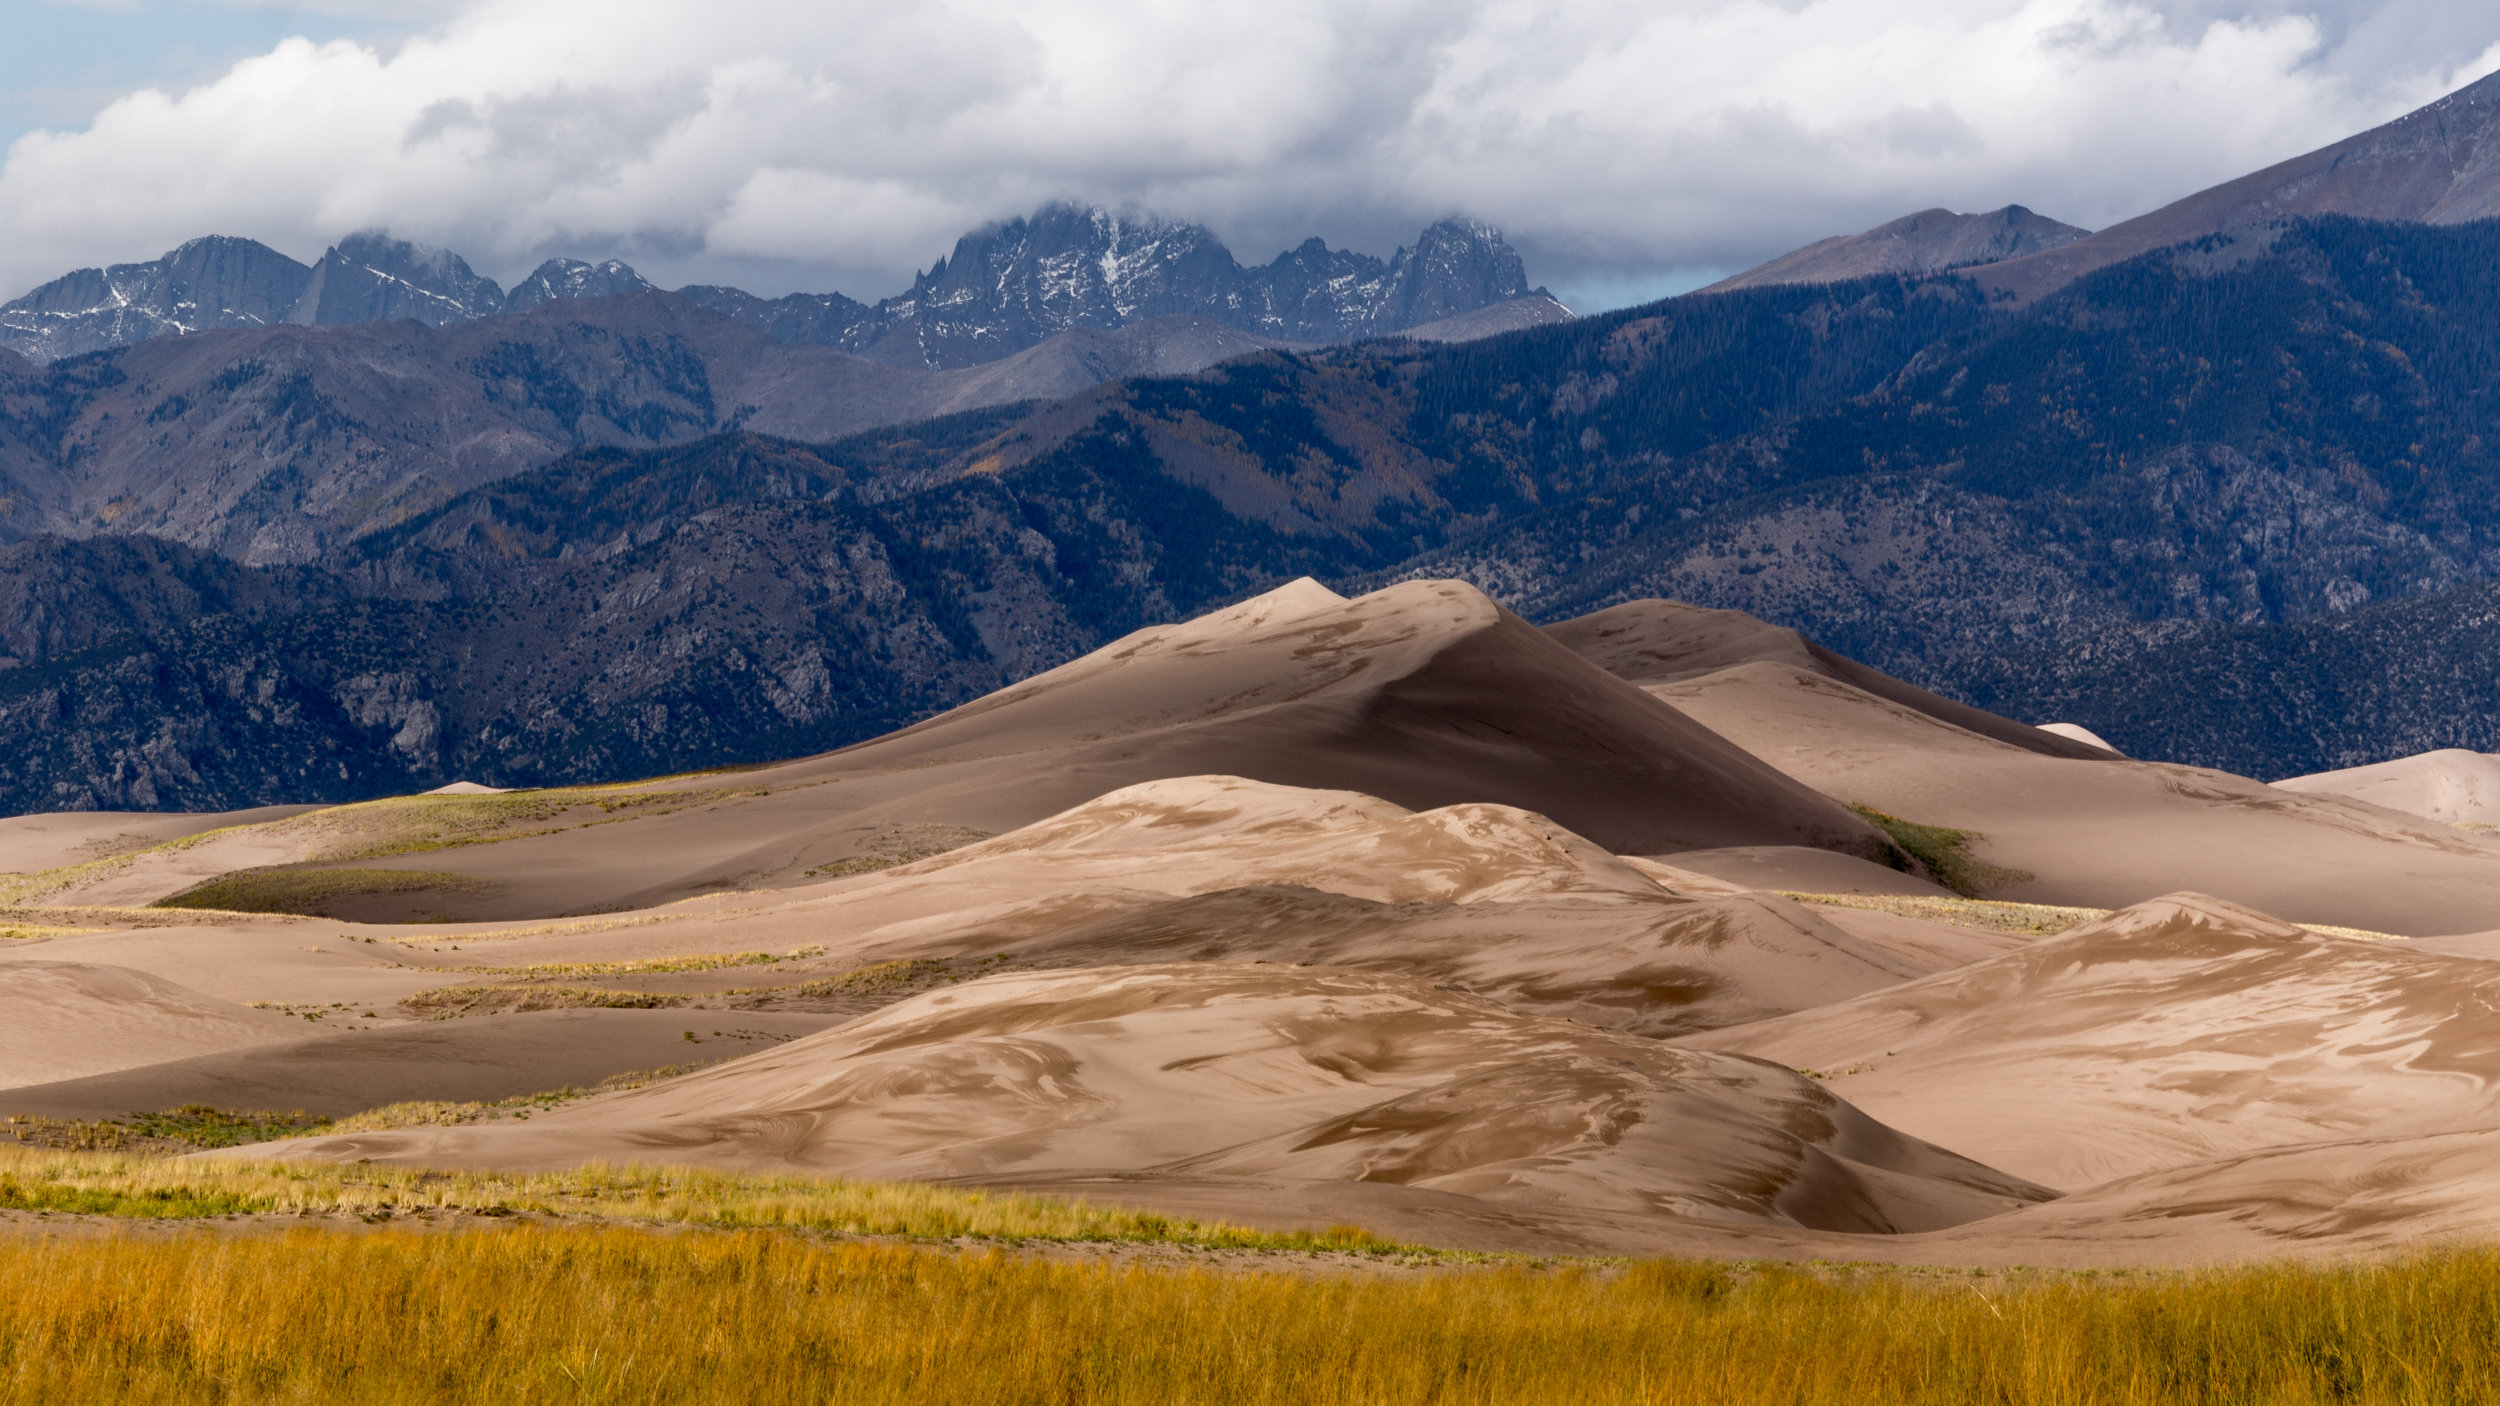 The Layered Effect, Great Sand Dunes National Park  © Andrew Lockwood 2017